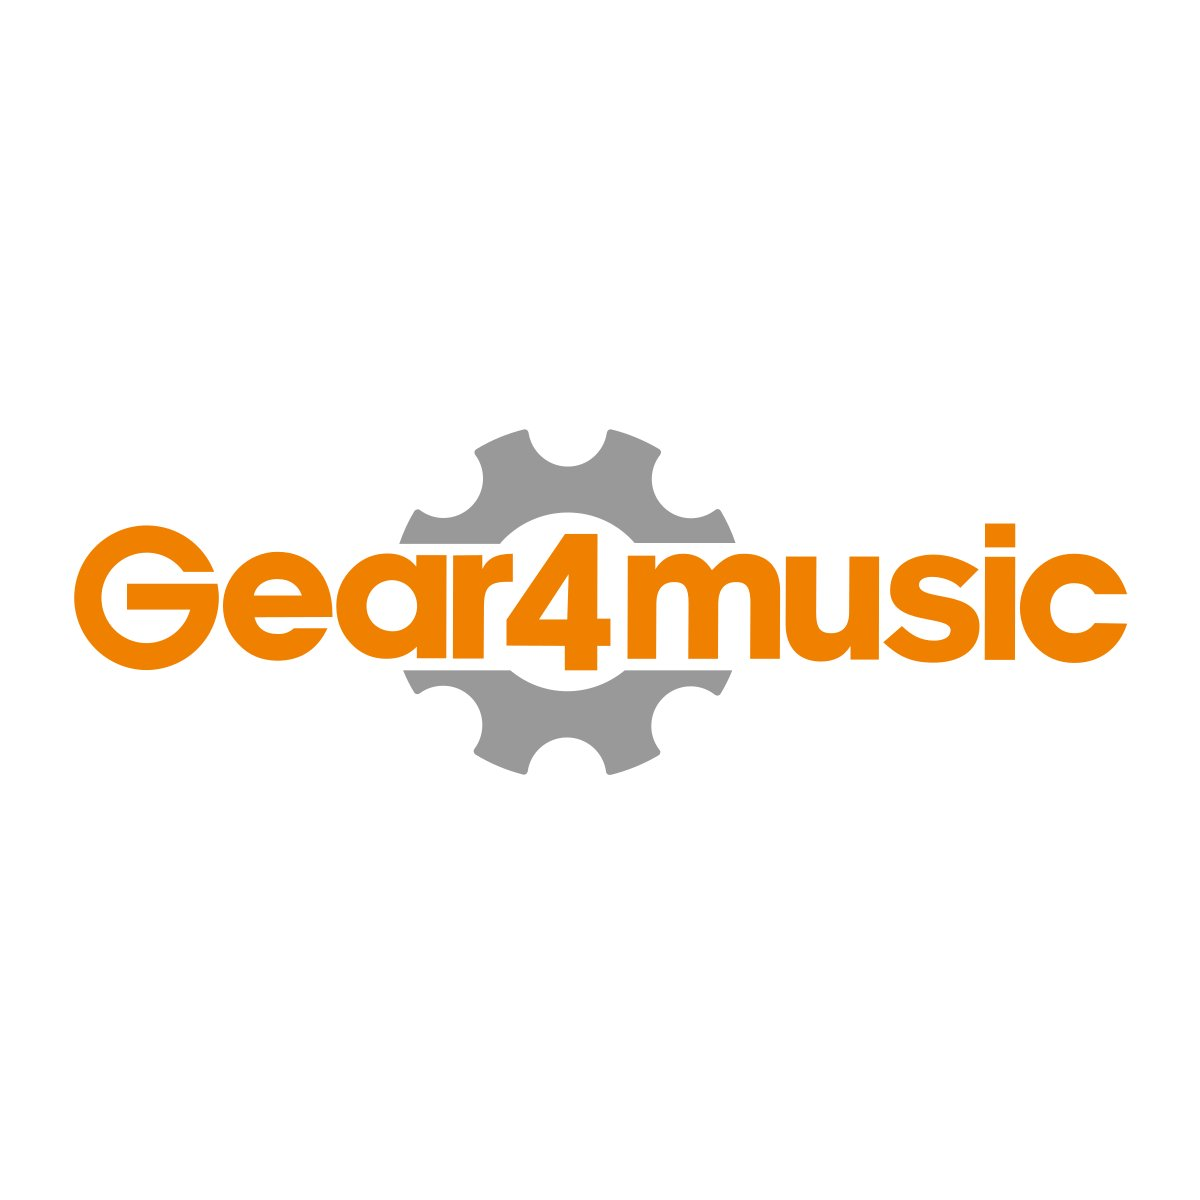 Coppergate Professionelle Trompete, von Gear4music